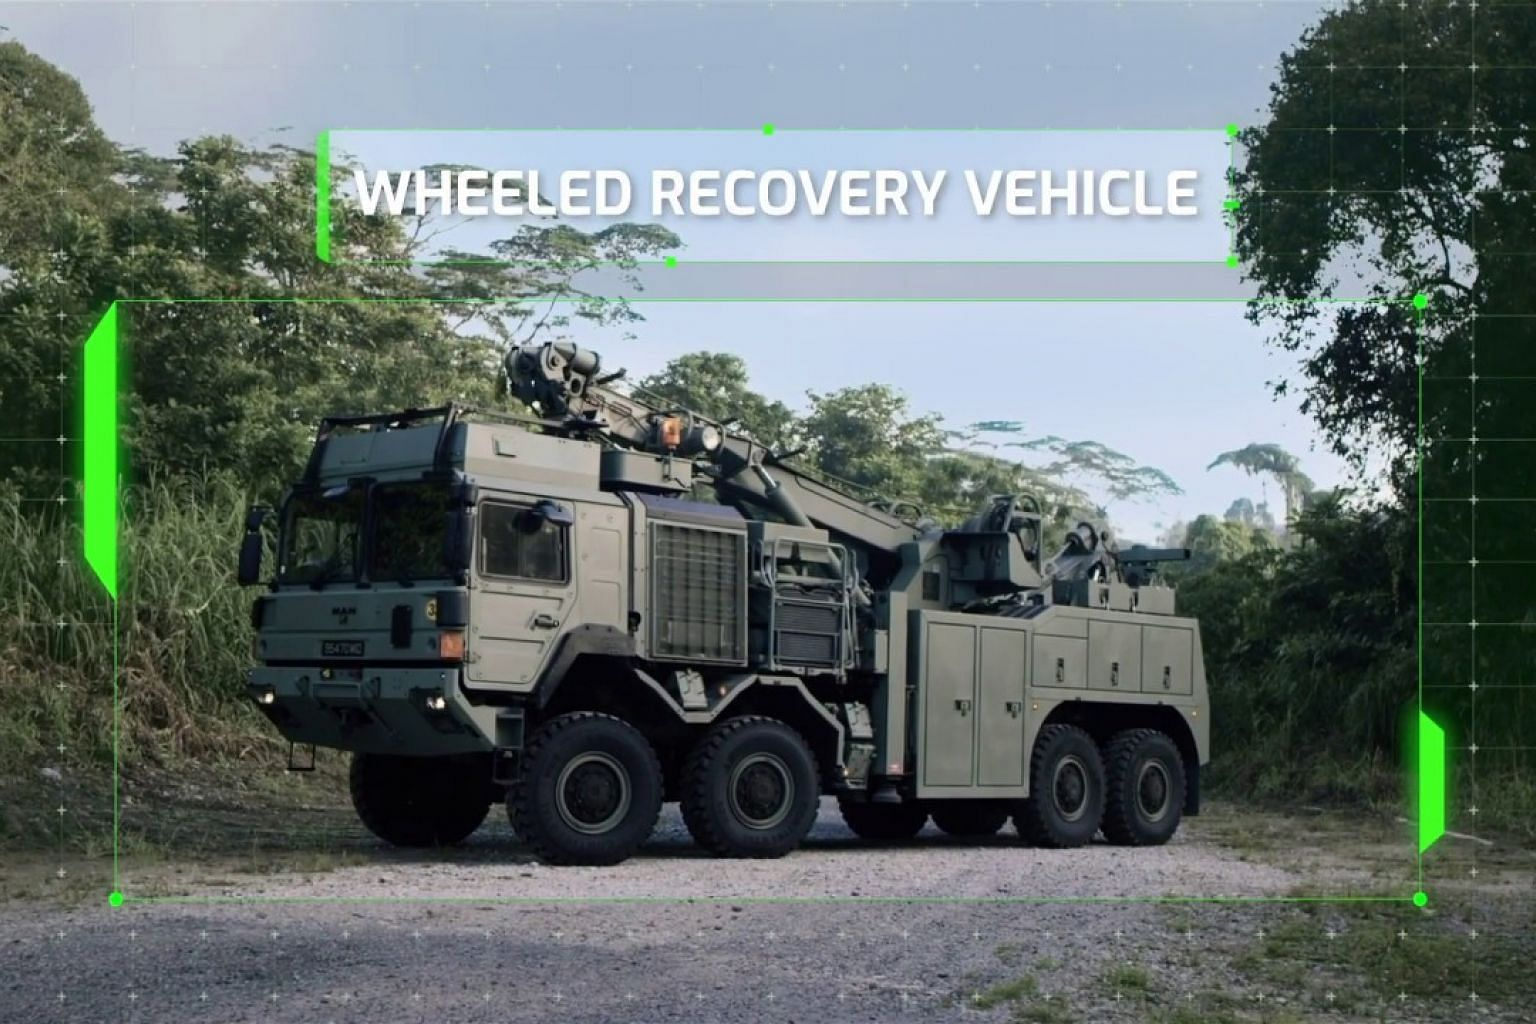 The Singapore Army's new Wheeled Recovery Vehicle